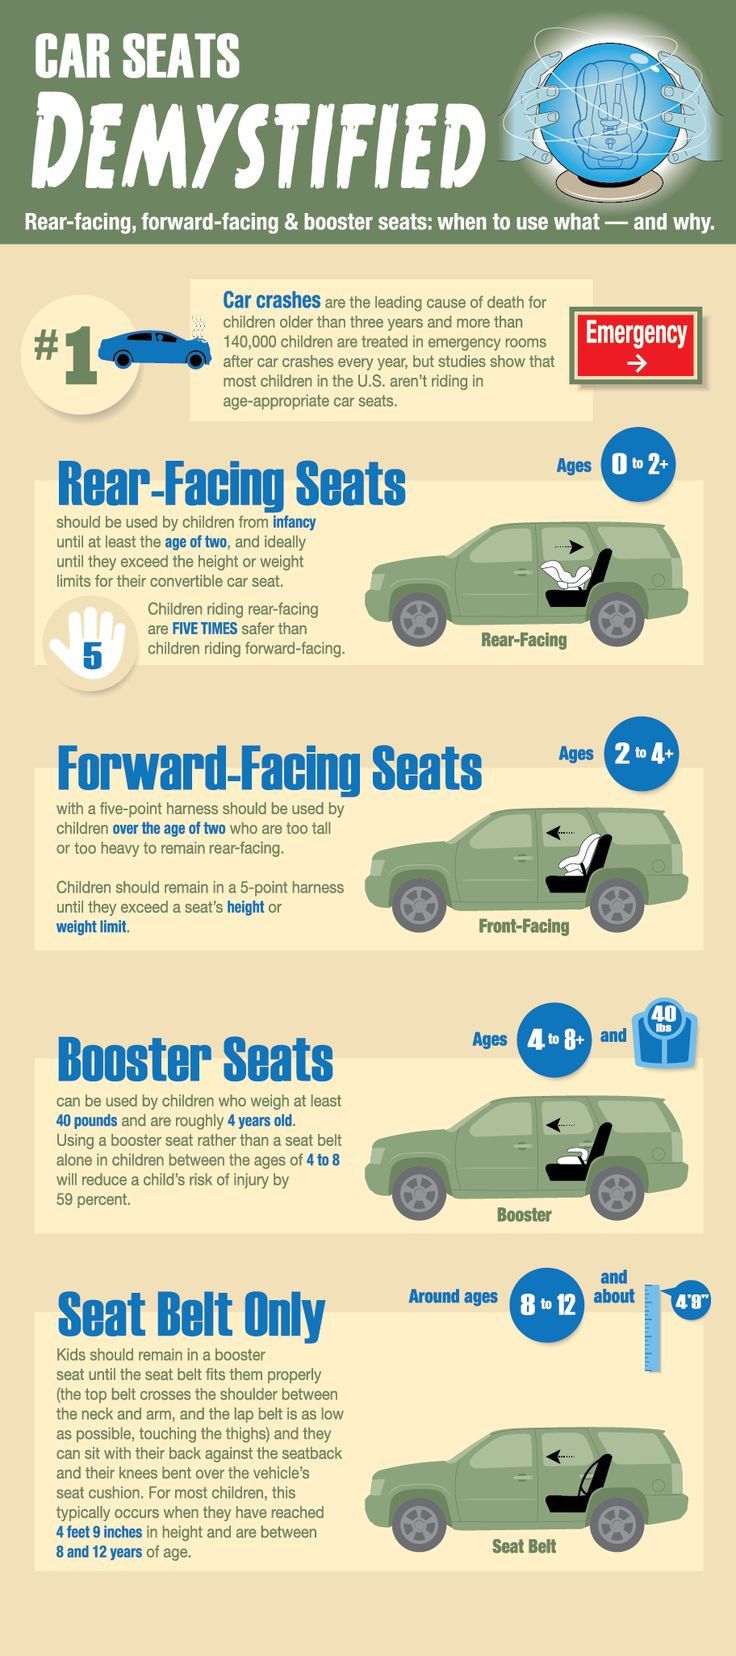 Car Seat Requirements Cheat Sheet [Infographic]